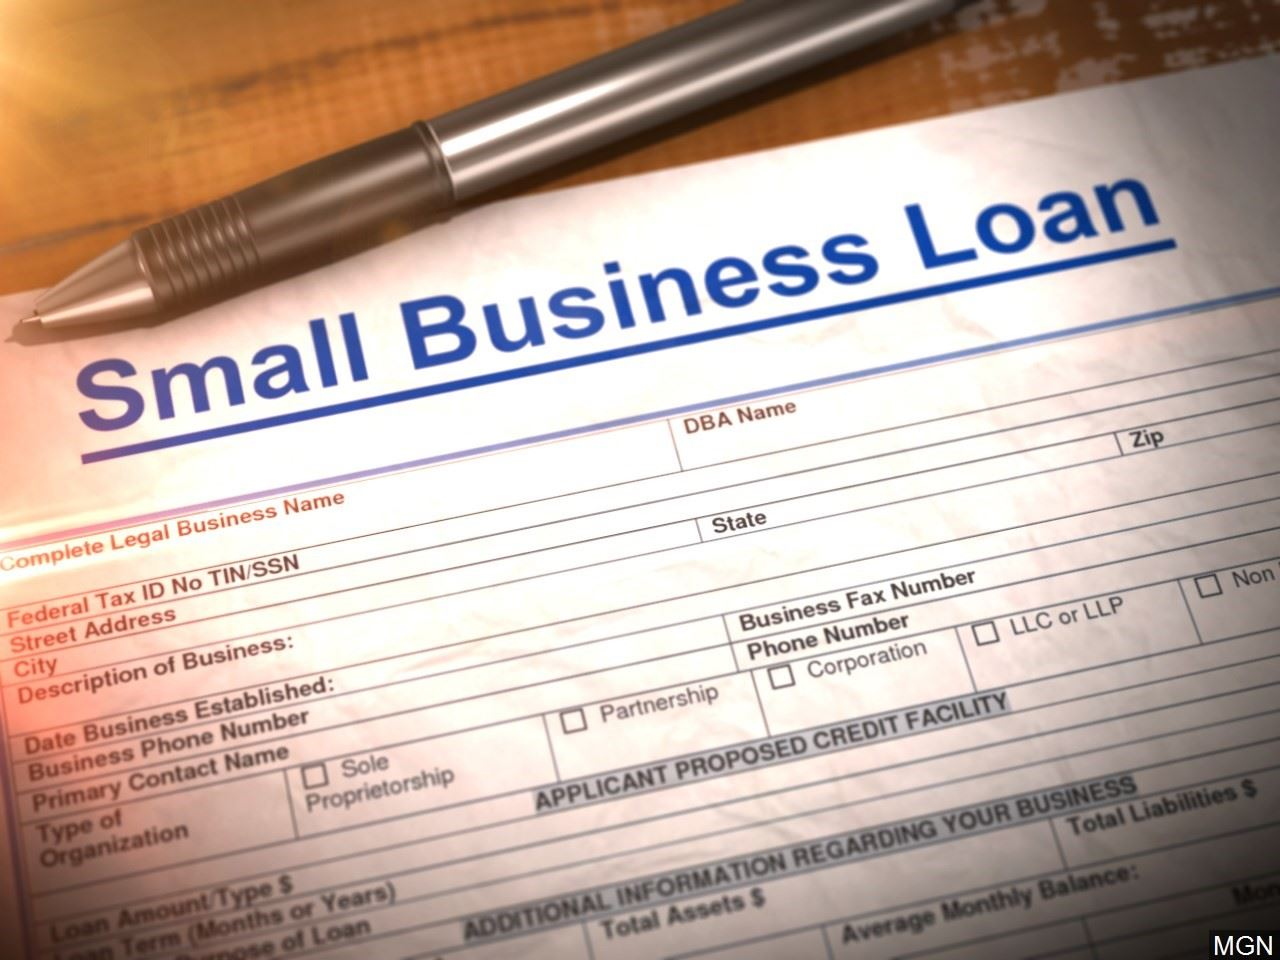 small business loan (2)